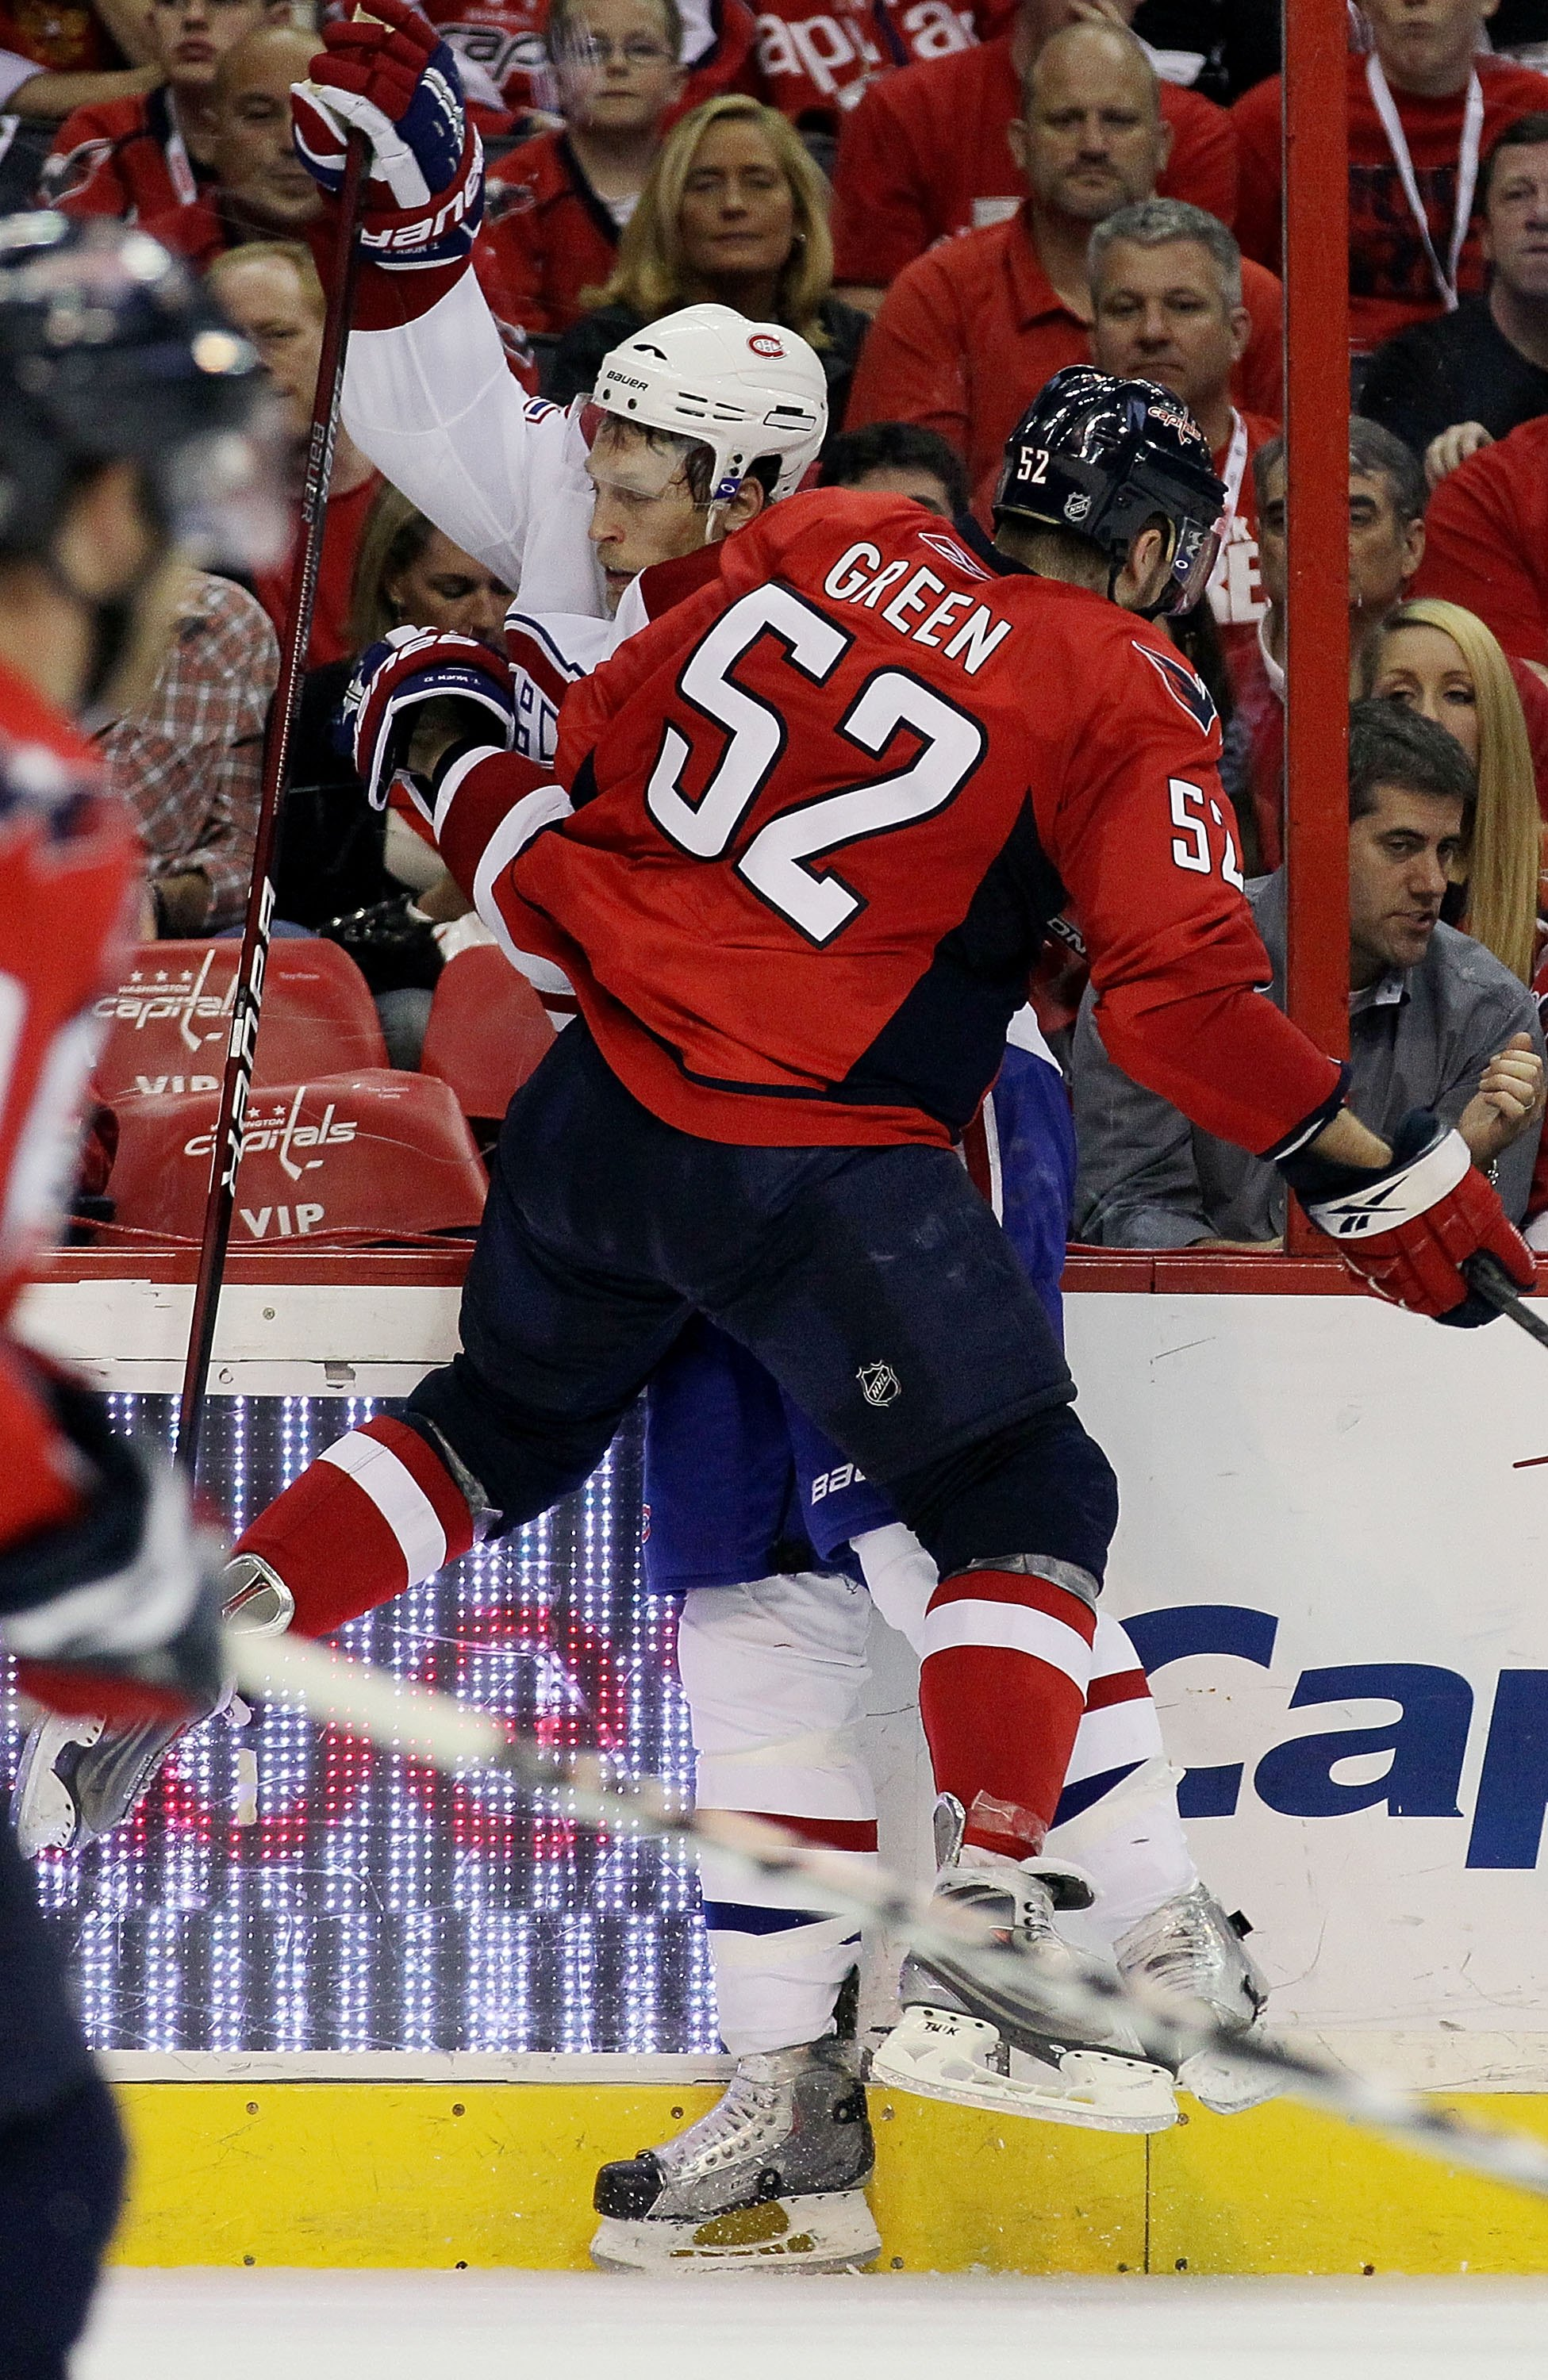 WASHINGTON DC, DC - APRIL 23:  Mike Green #52 of the Washington Capitals checks Travis Moen #32 of the Montreal Canadiens in Game Five of the Eastern Conference Quarterfinals during the 2010 NHL Stanley Cup Playoffs at the Verizon Center on April 23, 2010